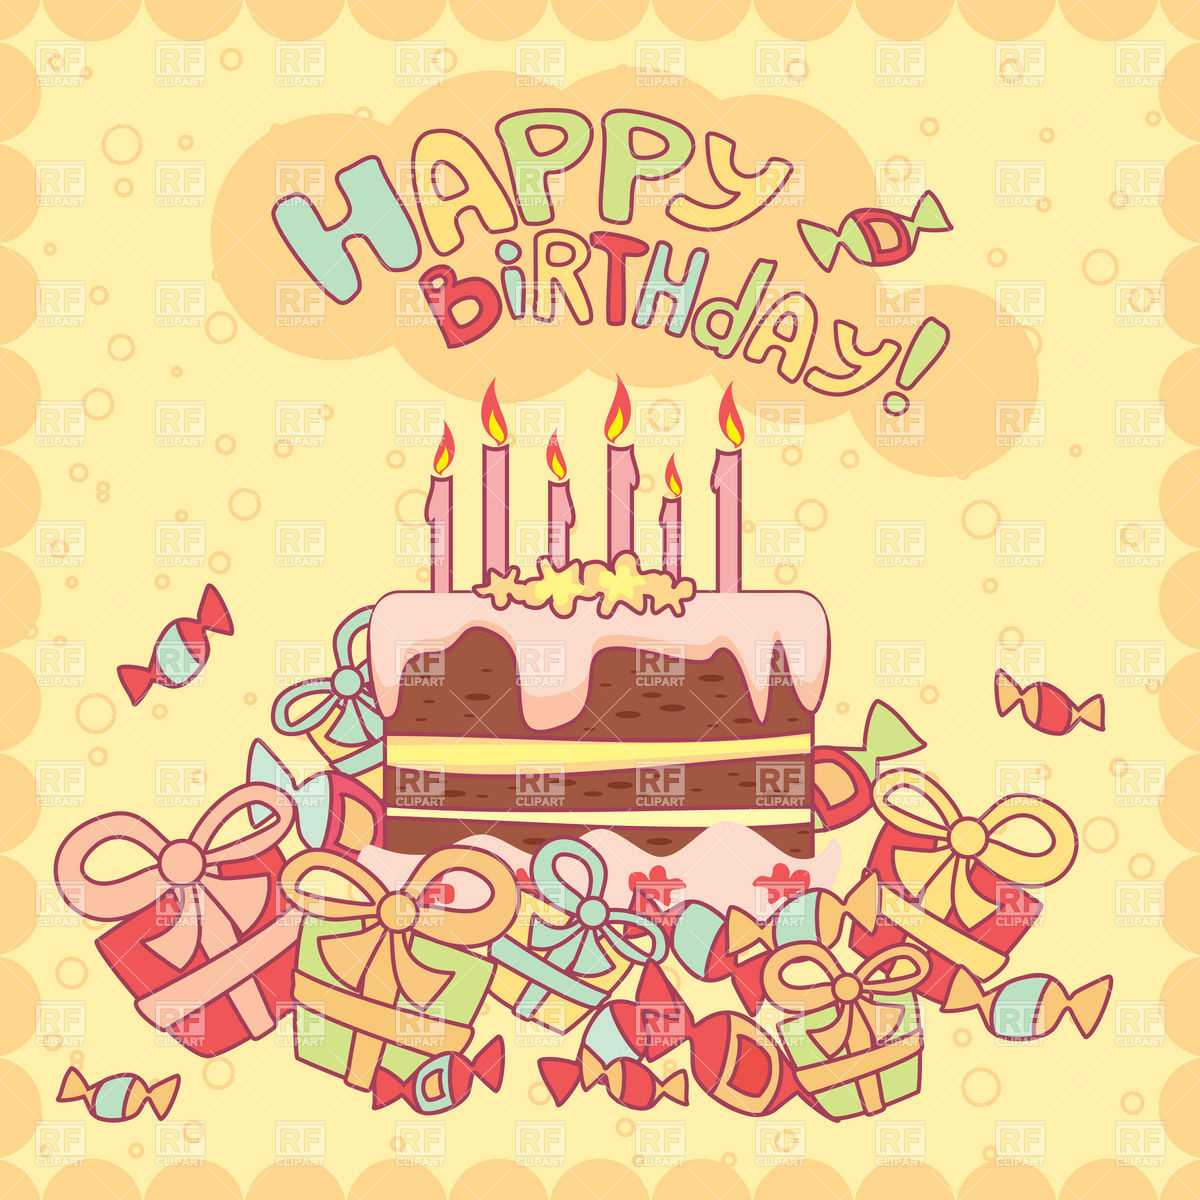 birthday wishes free download images ; happy-birthday-card-with-cake-candles-and-gifts-royalty-free-happy-birthday-card-with-cake-candles-and-gifts-download-royalty-free-click-to-zoom